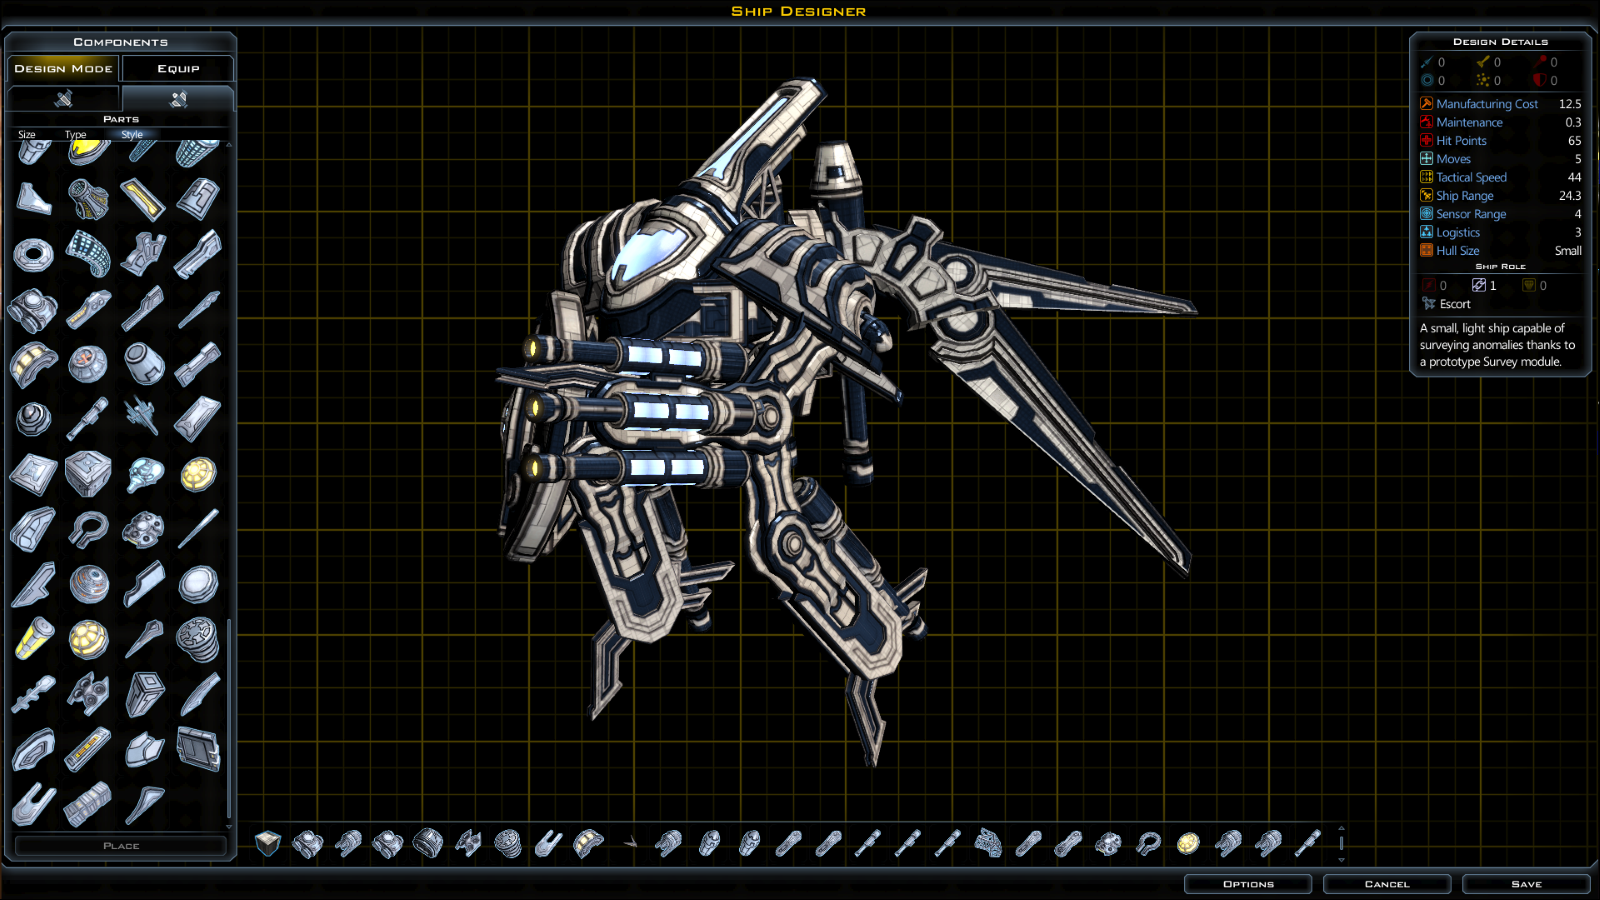 Galactic Civilizations III Builder's Kit DLC Now Available